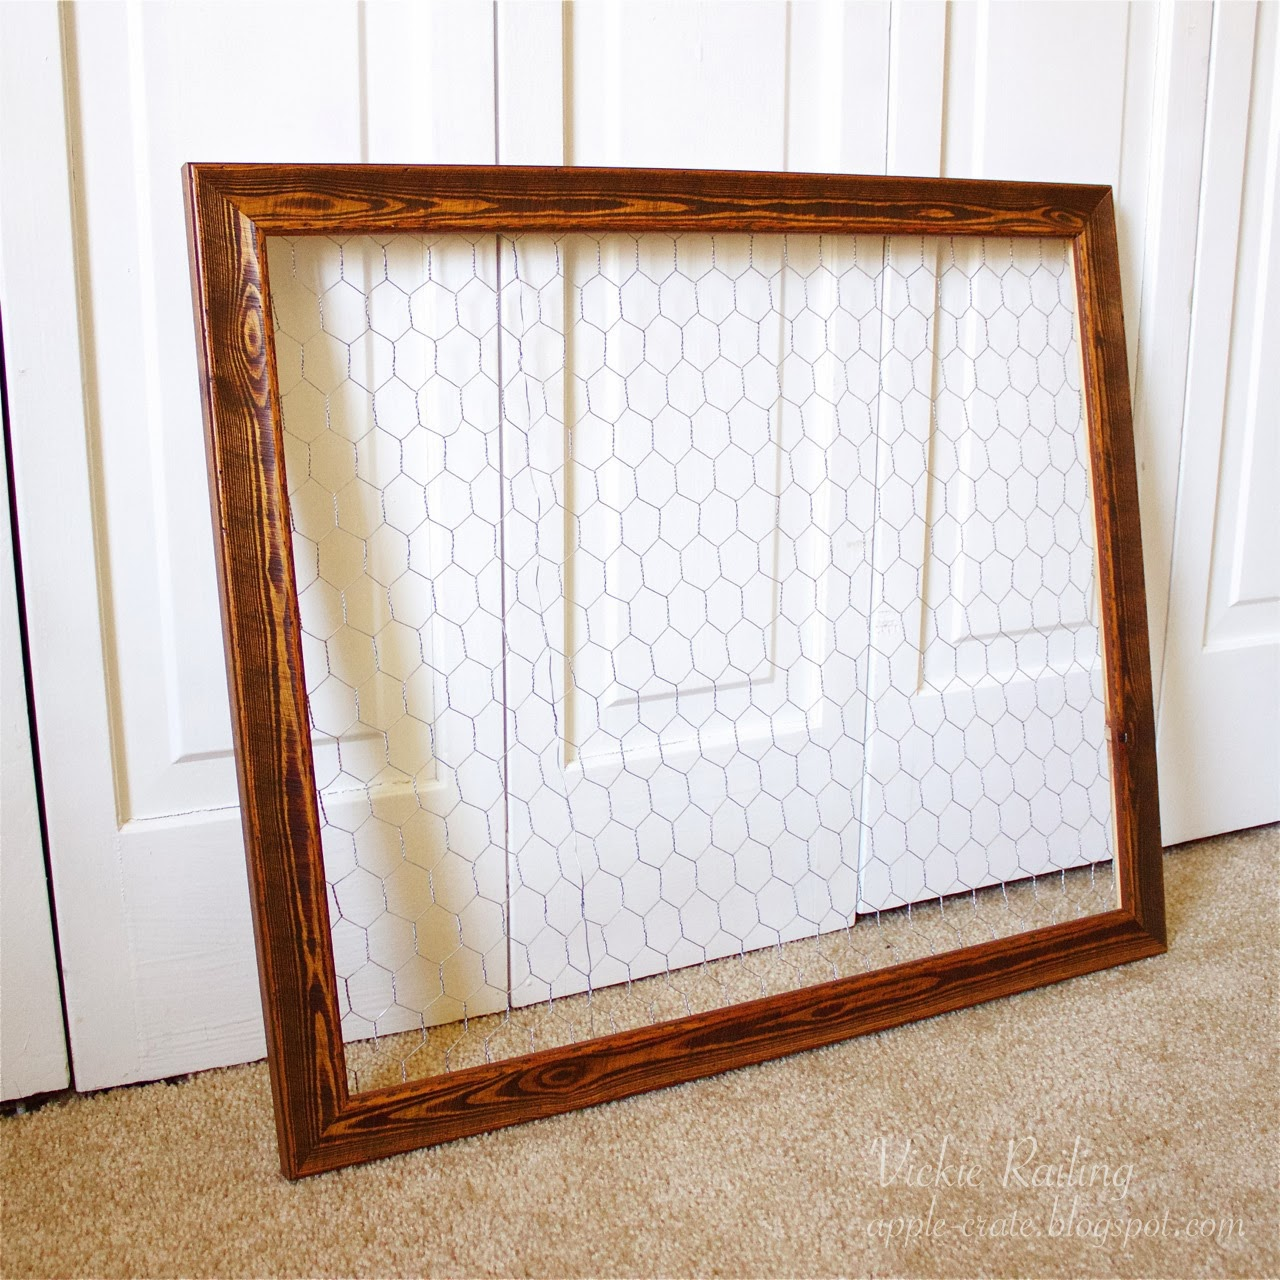 The Apple Crate: Chicken Wire Frame & DIY Vintage Clothespins